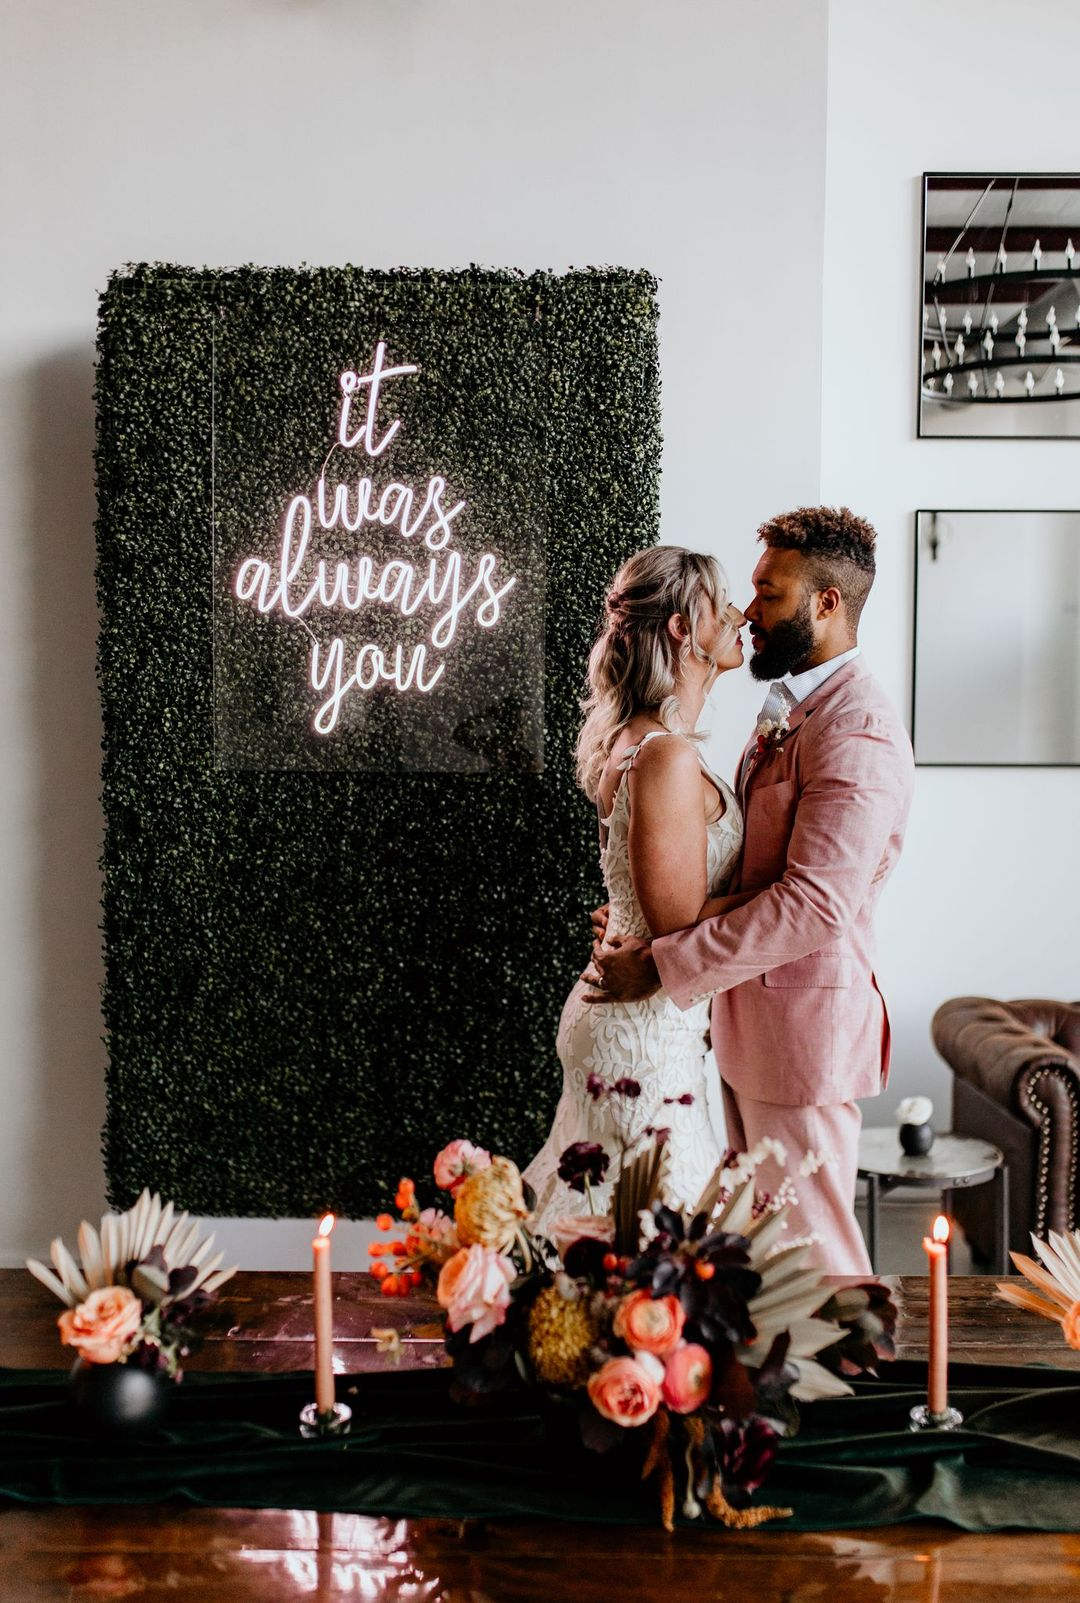 neon light and boxwood wall photo backdrop